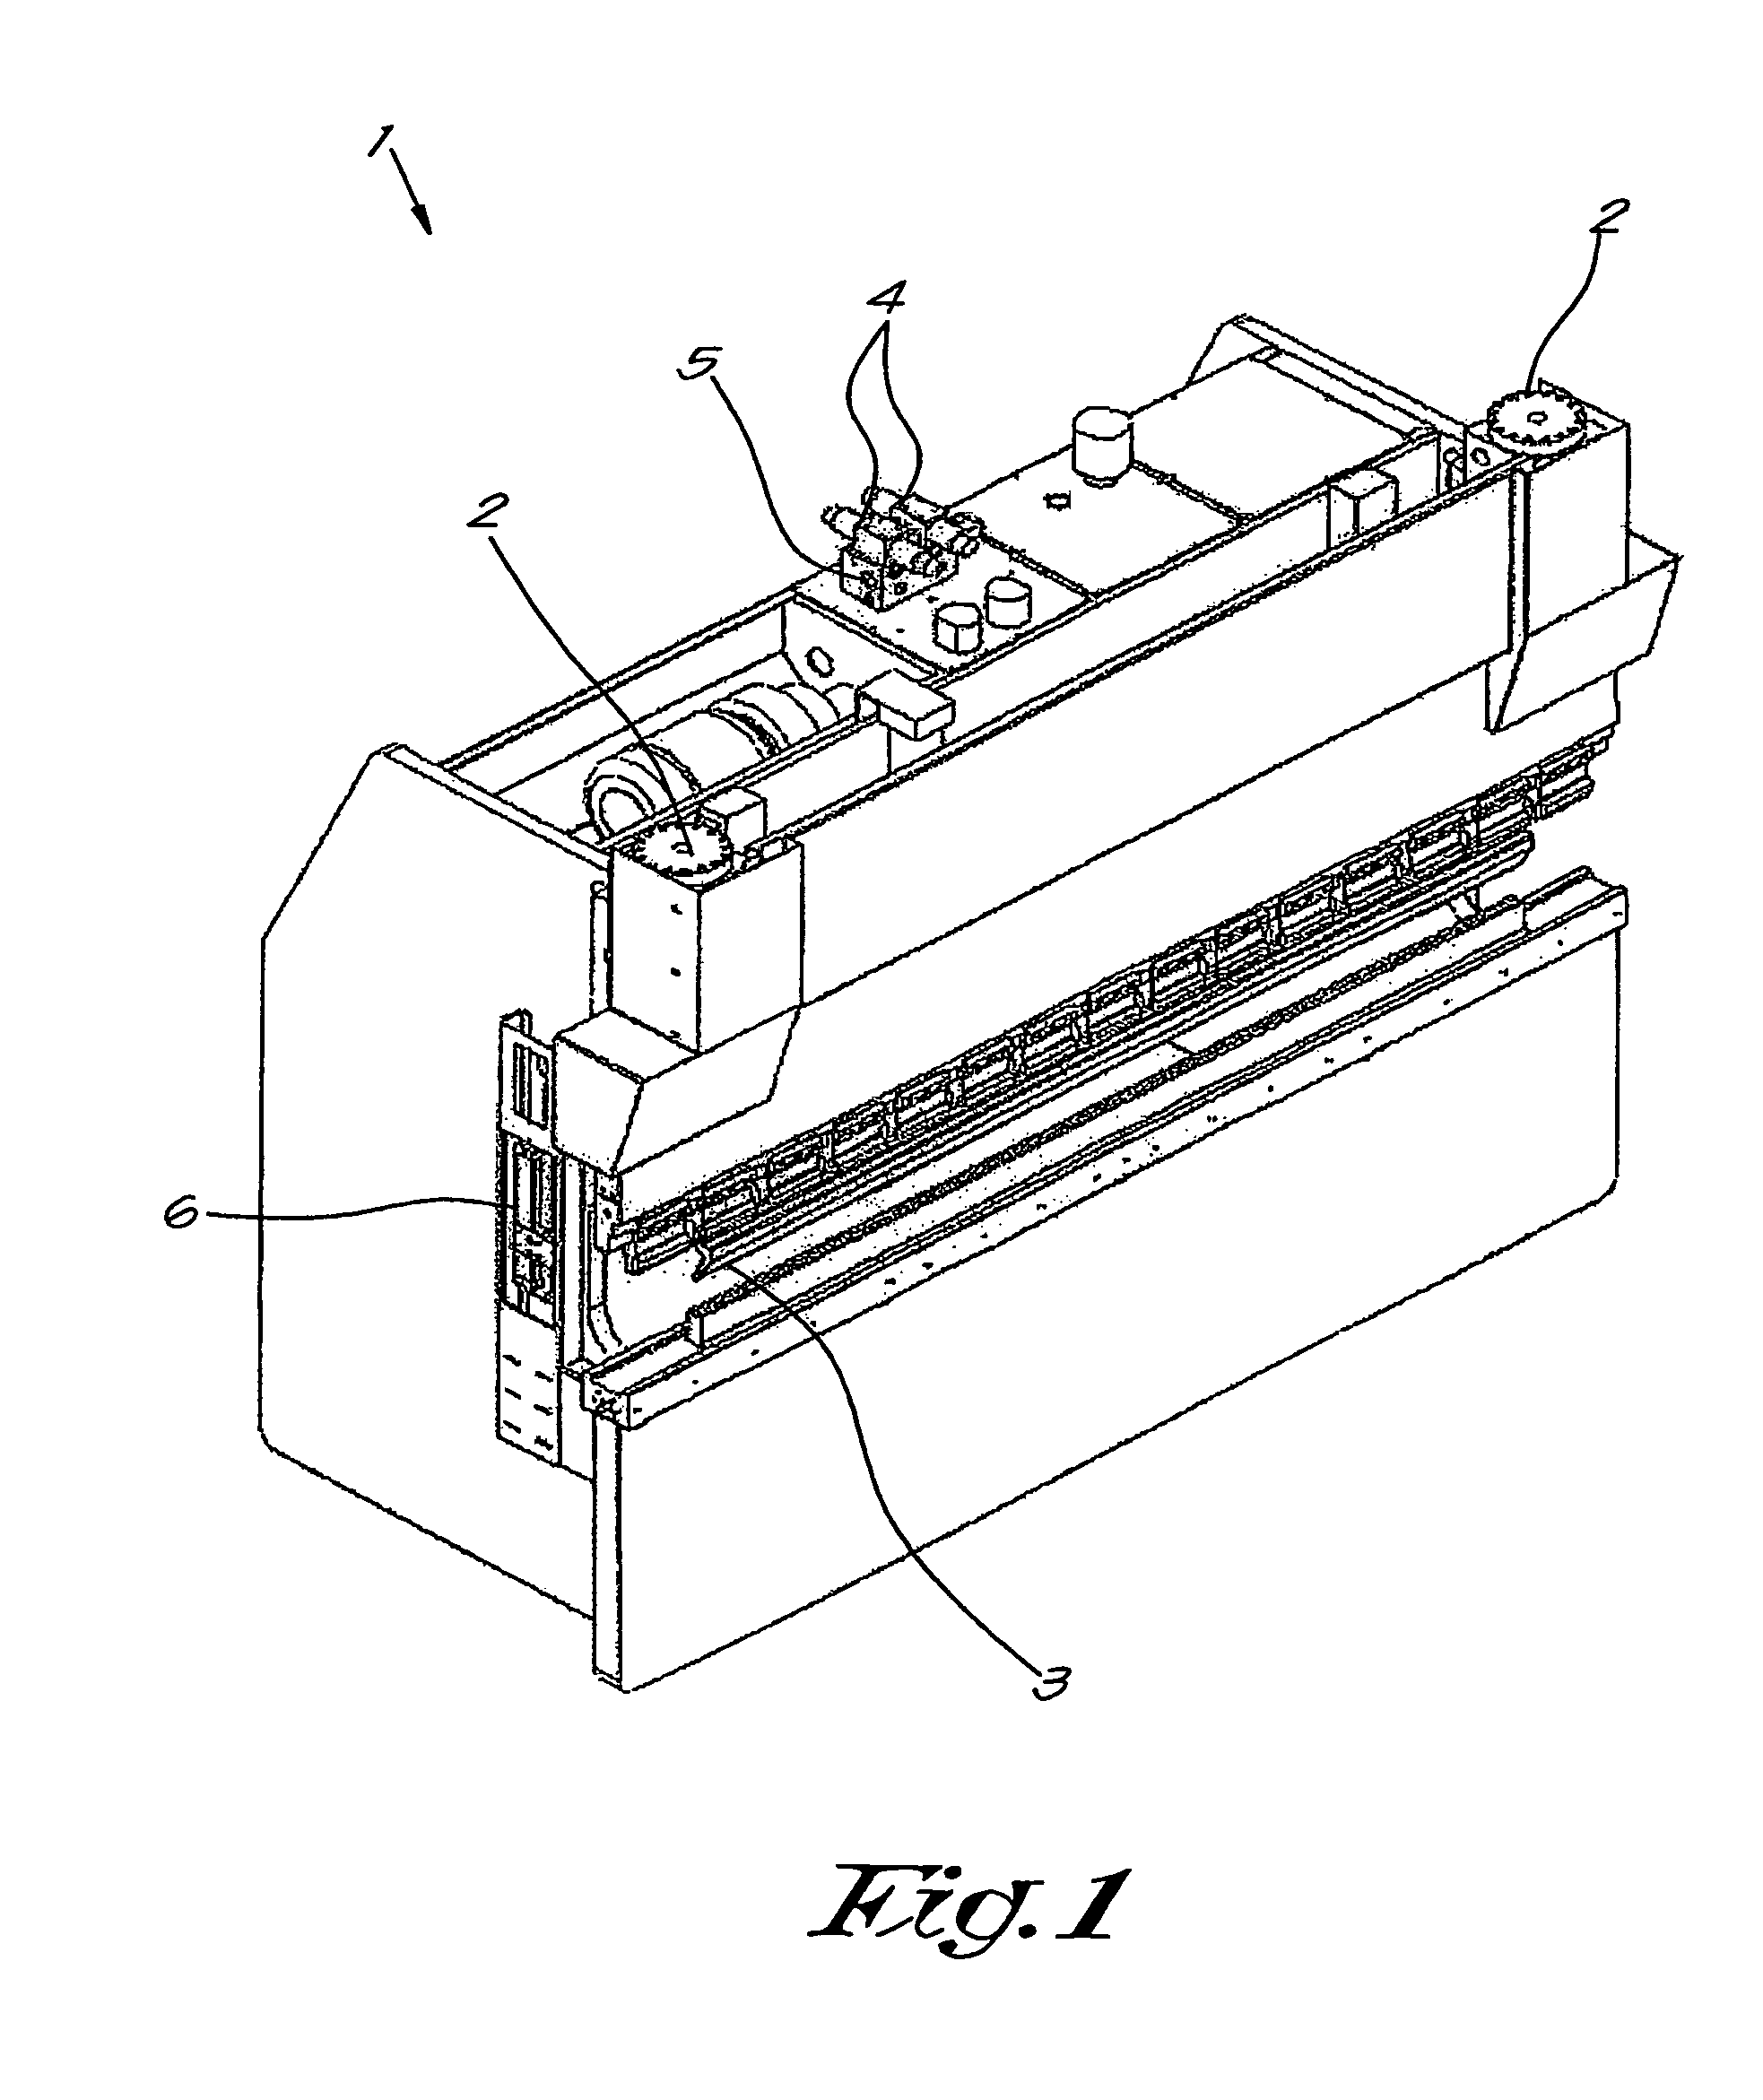 Patent Us8342083 Method To Control Operation And Safety Of A Simple Hydraulic Press How Decompression In Drawing